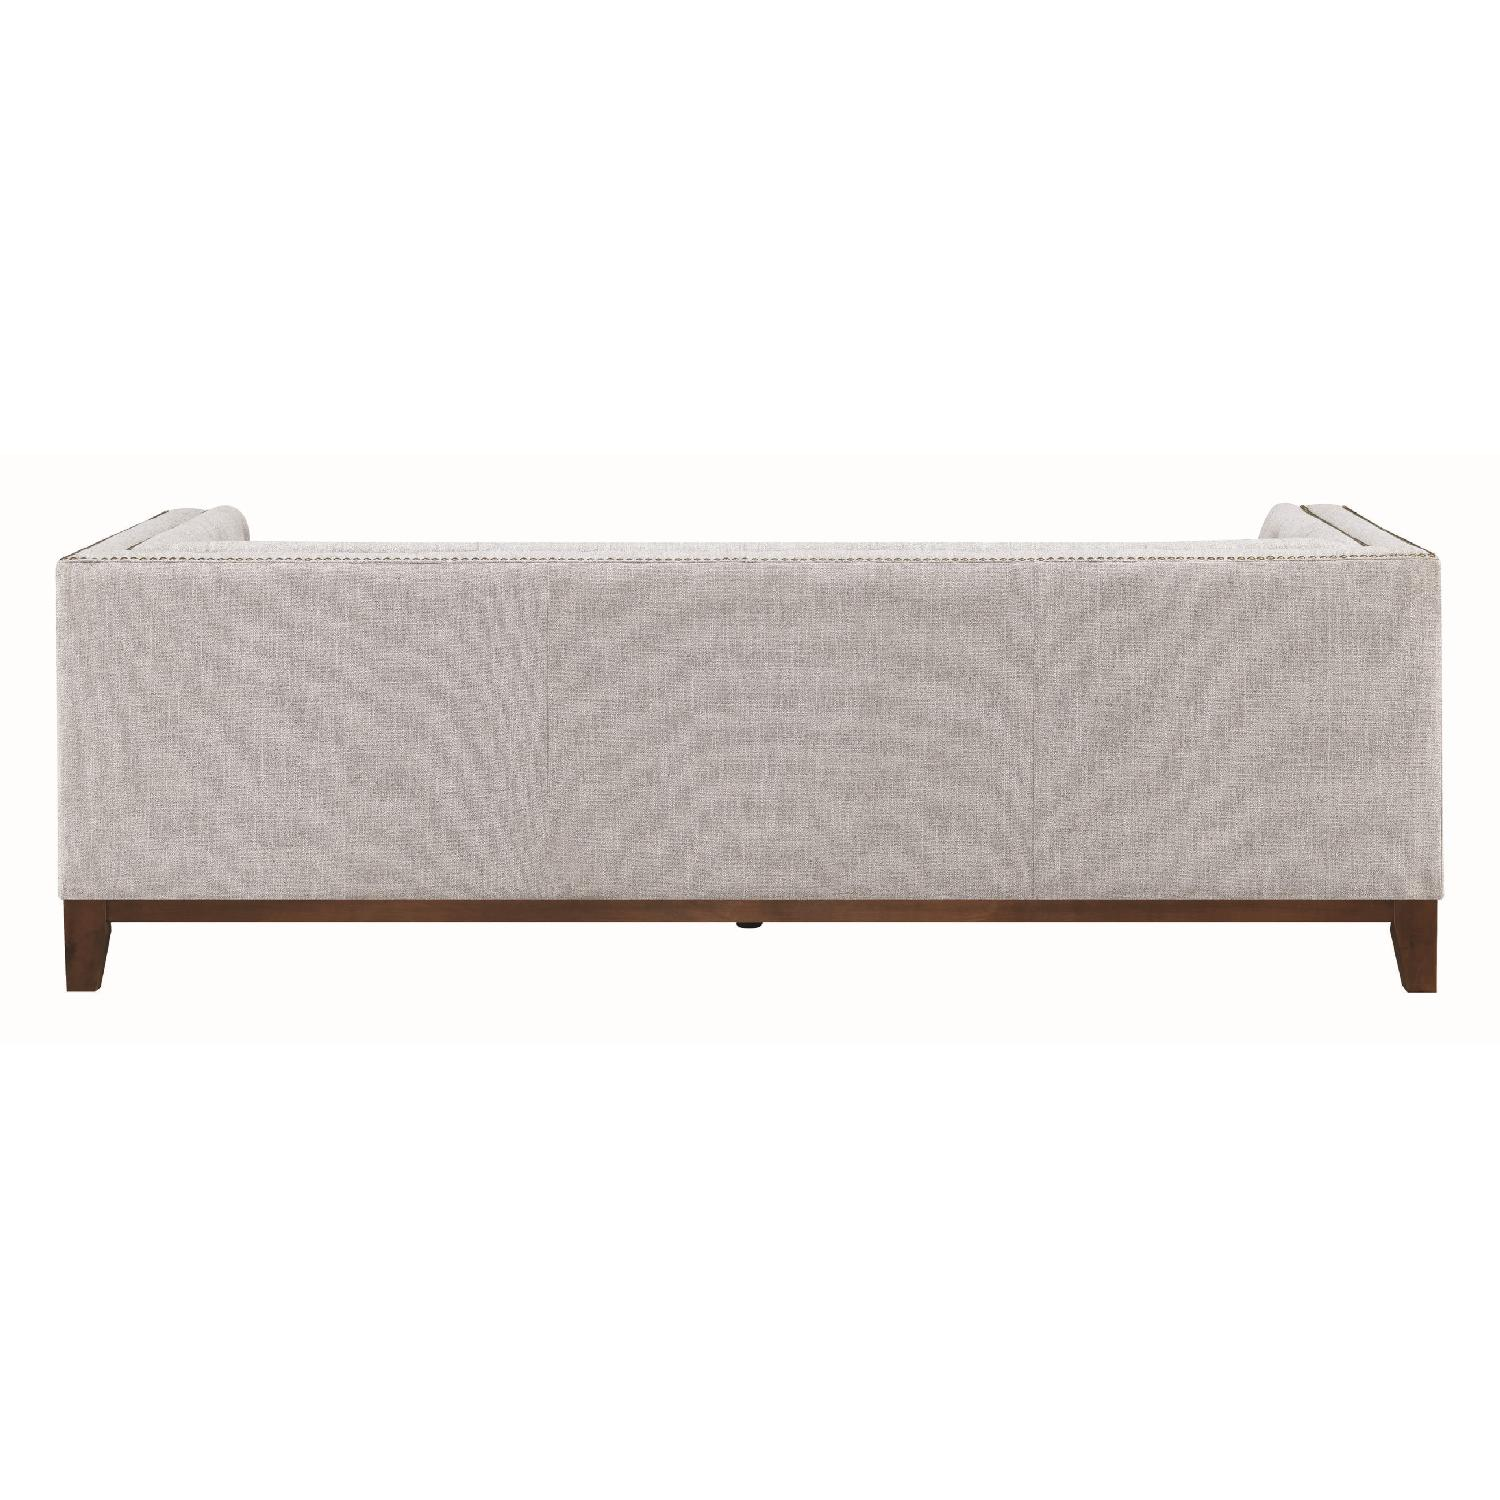 Mid Century Style King Bed in Metallic Silver Glitter Design - image-22